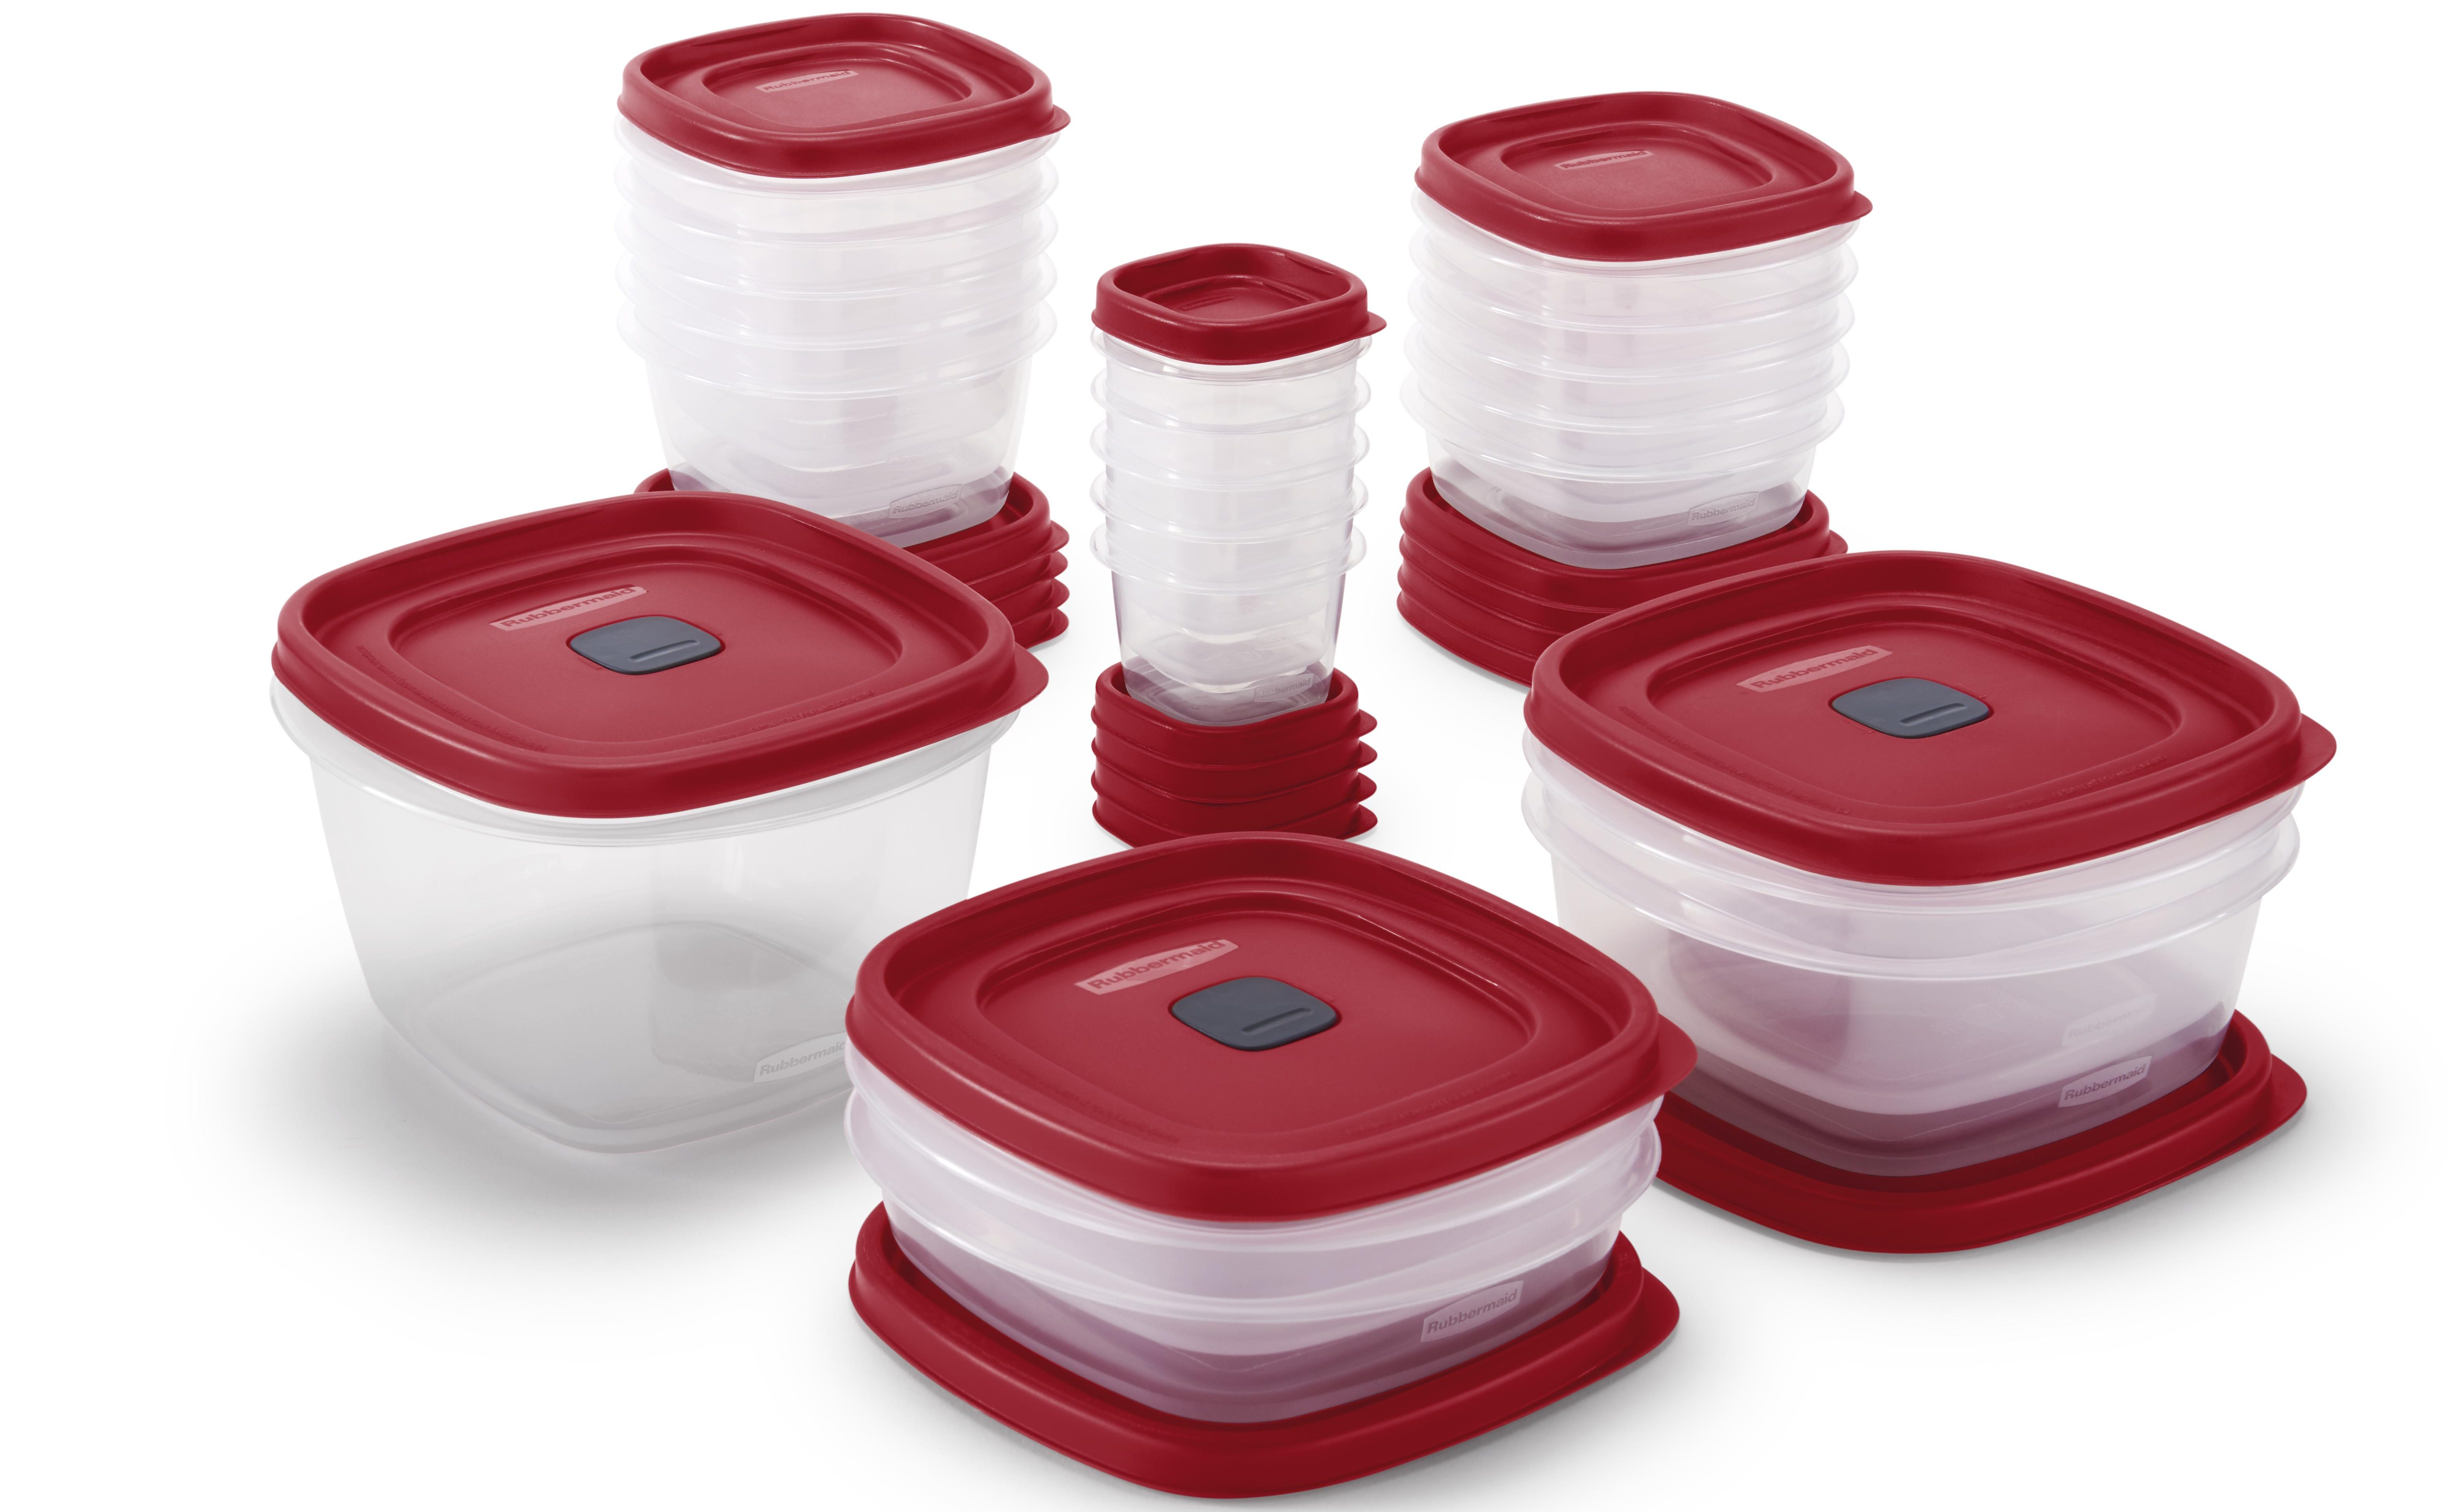 rubbermaid set with lids